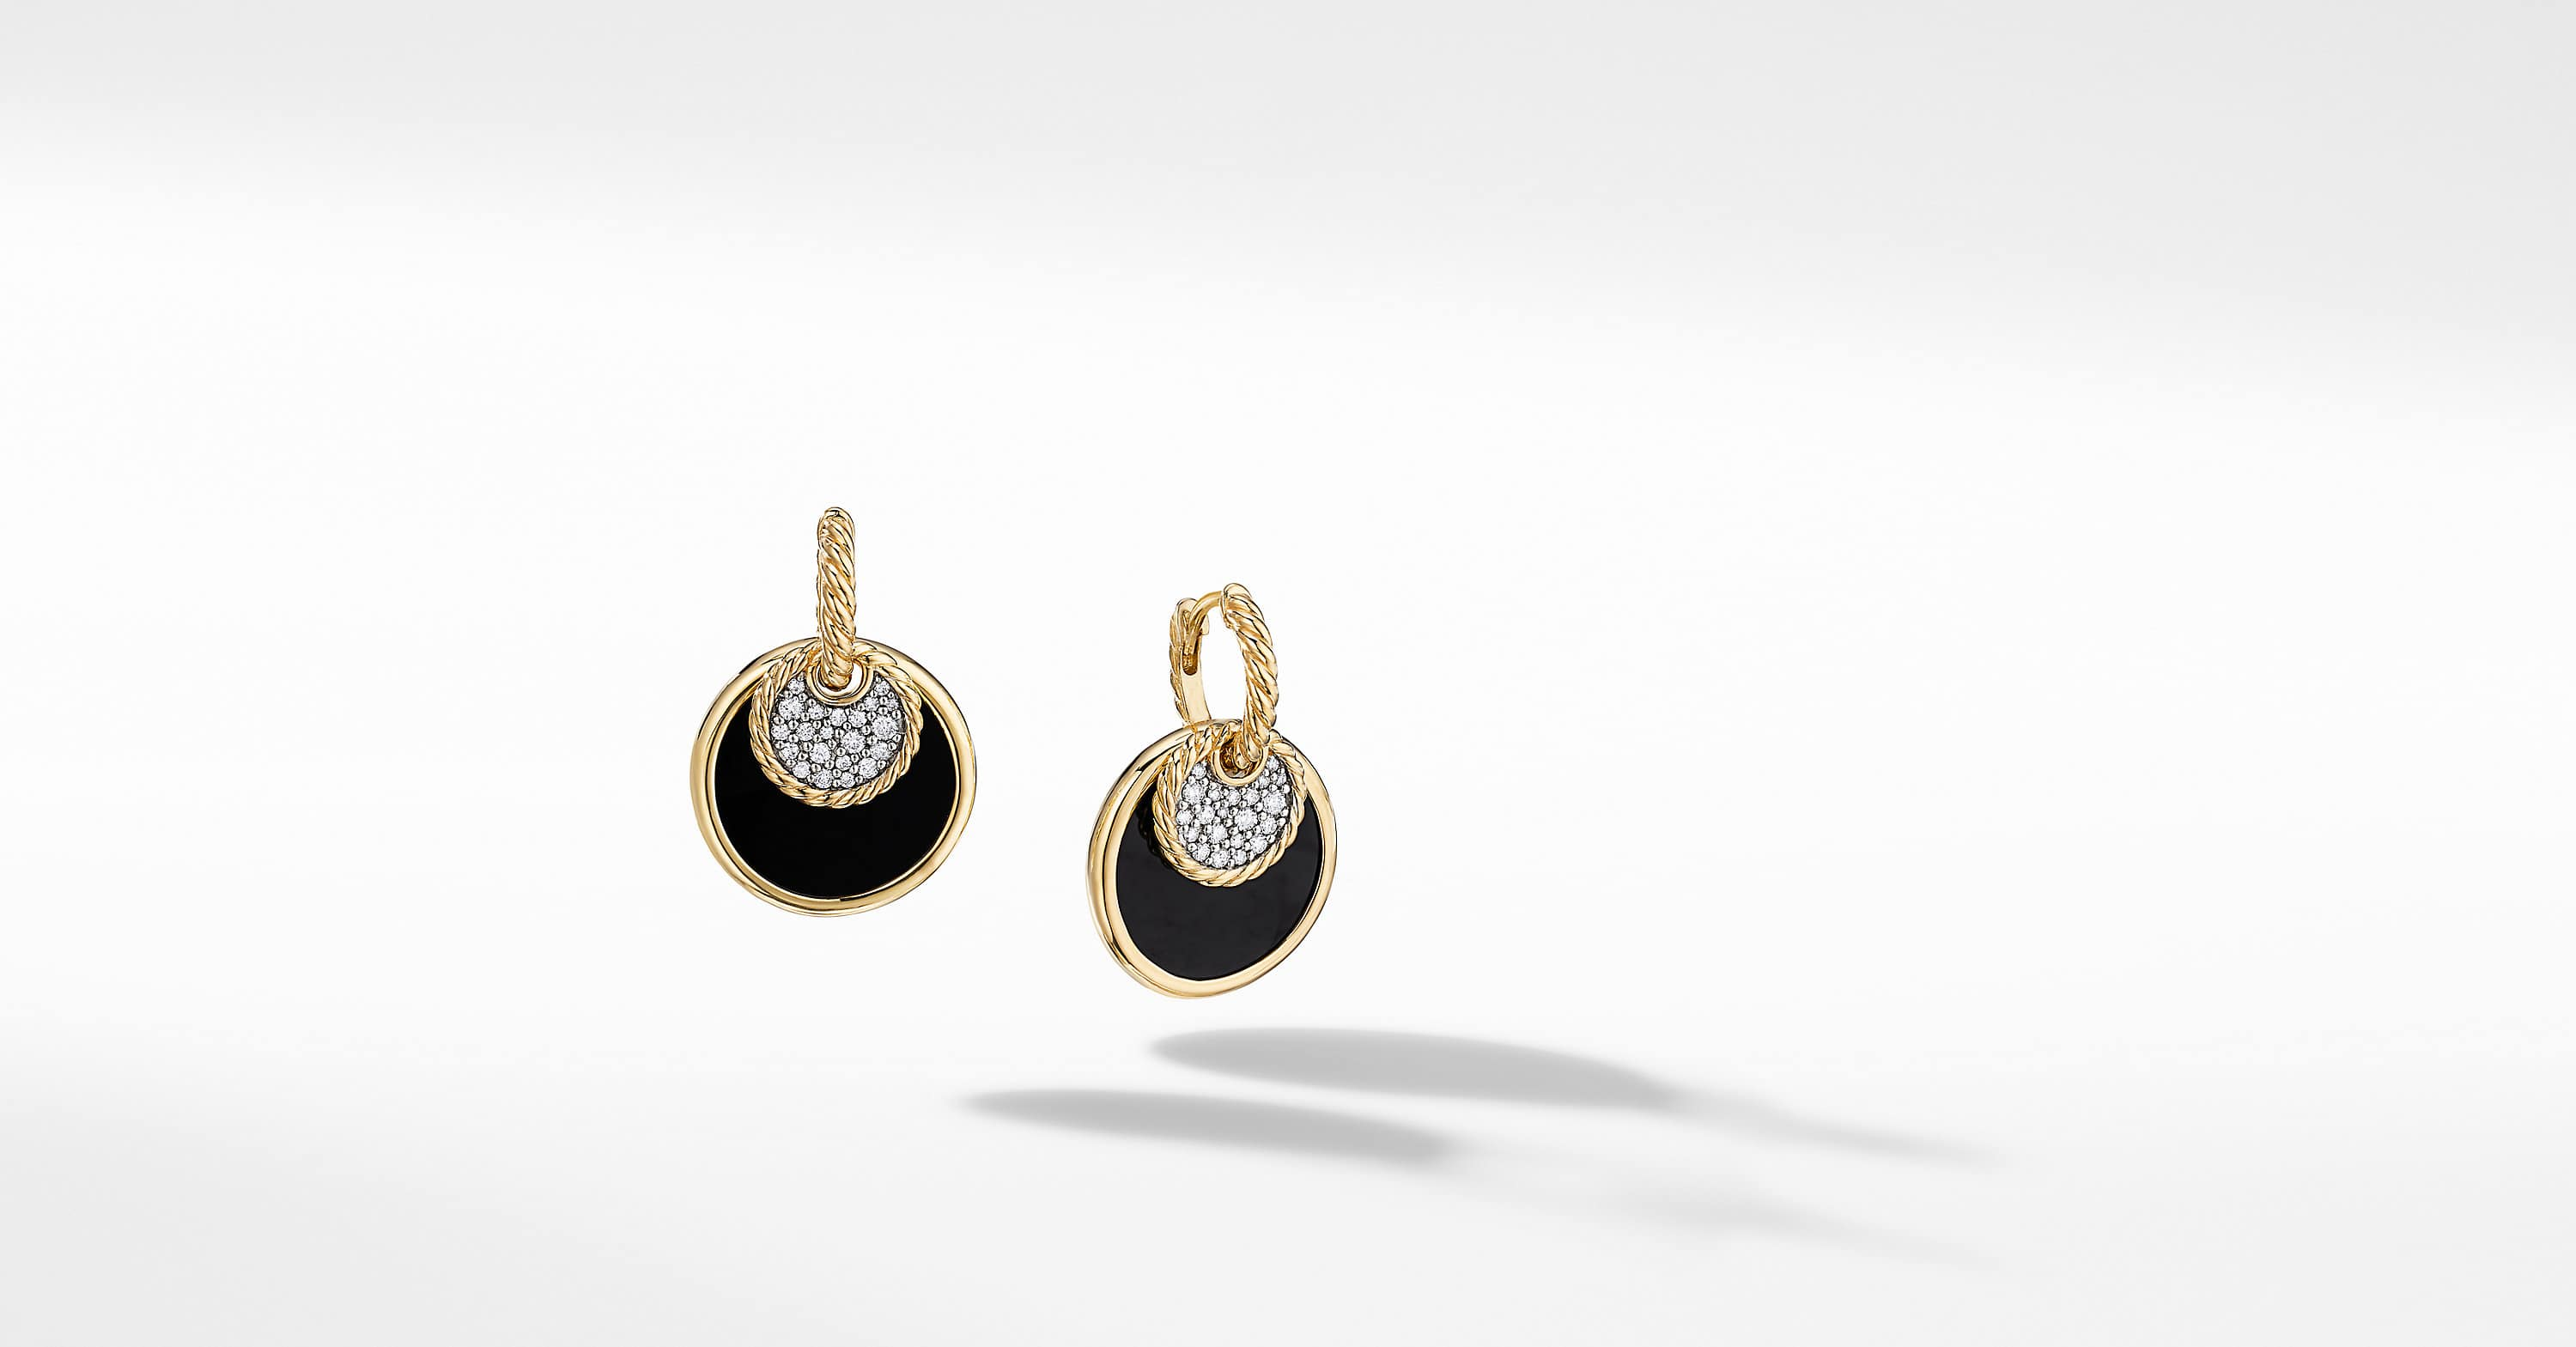 DY Elements Convertible Drop Earrings in 18K Yellow Gold with Diamonds